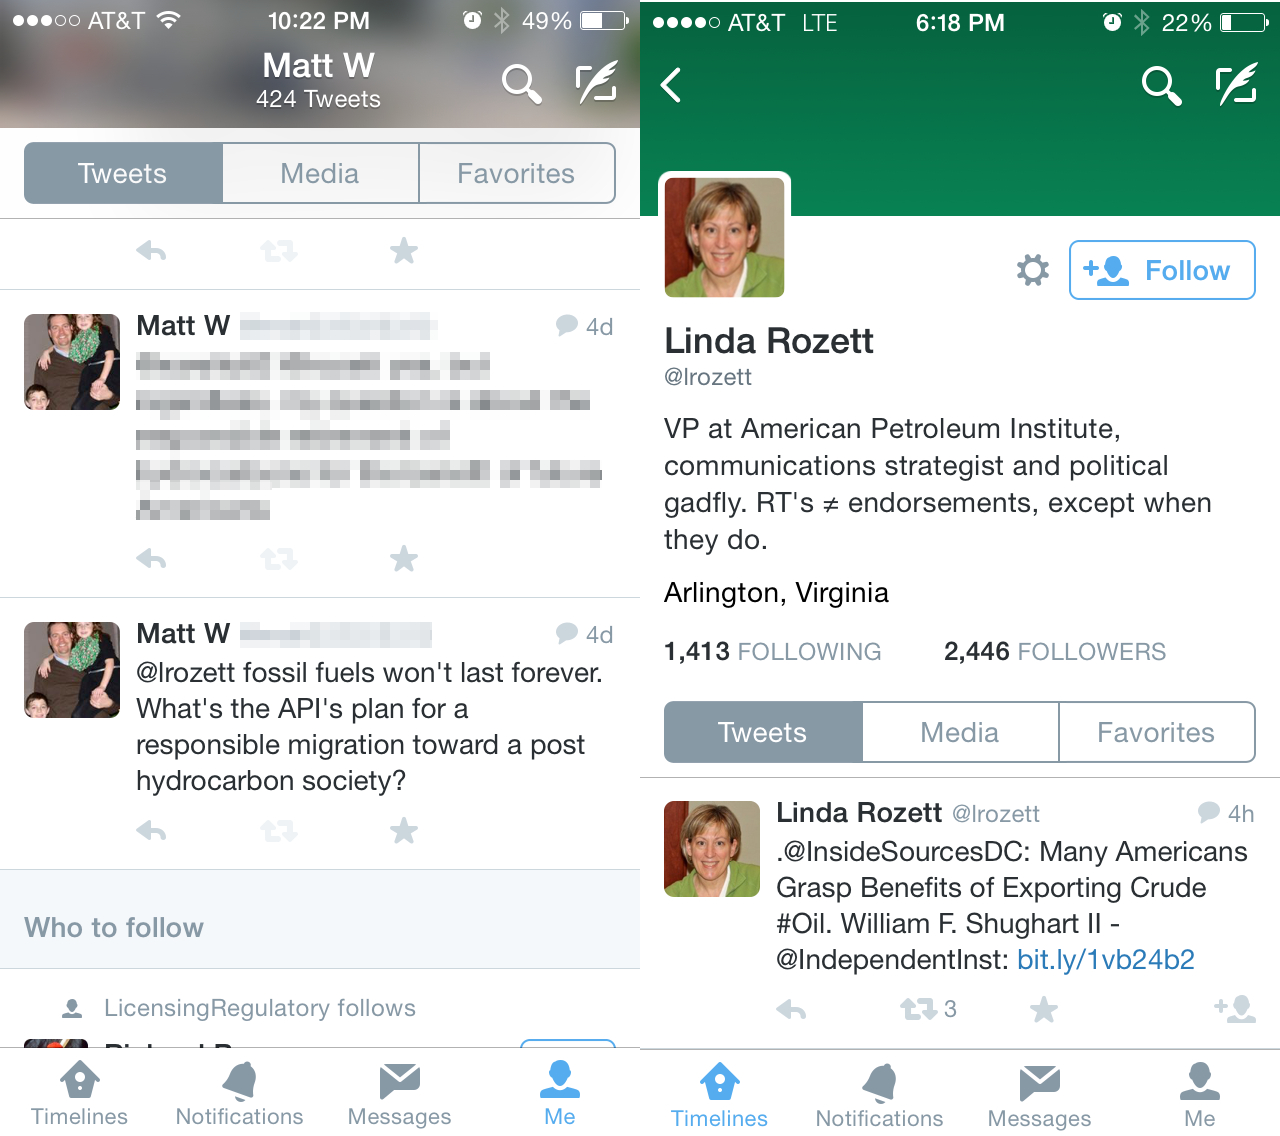 """I was following Linda Rozette on Twitter. My only communication with her was to ask the question you see on the left. Rather than provide an answer, Linda went through a procedure to knock me off her followers list. Notice it does not say """"Following"""" in the upper right hand side of her Twitter profile anymore."""